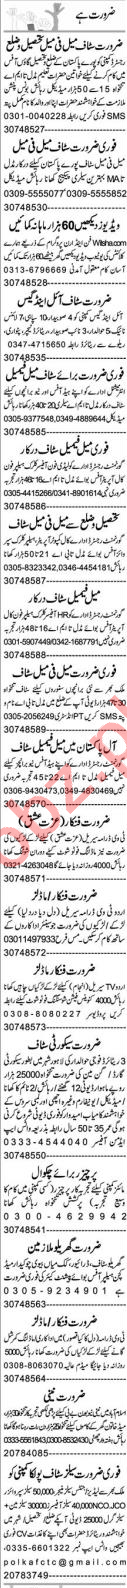 Recovery Officer & Data Entry Operator Jobs 2020